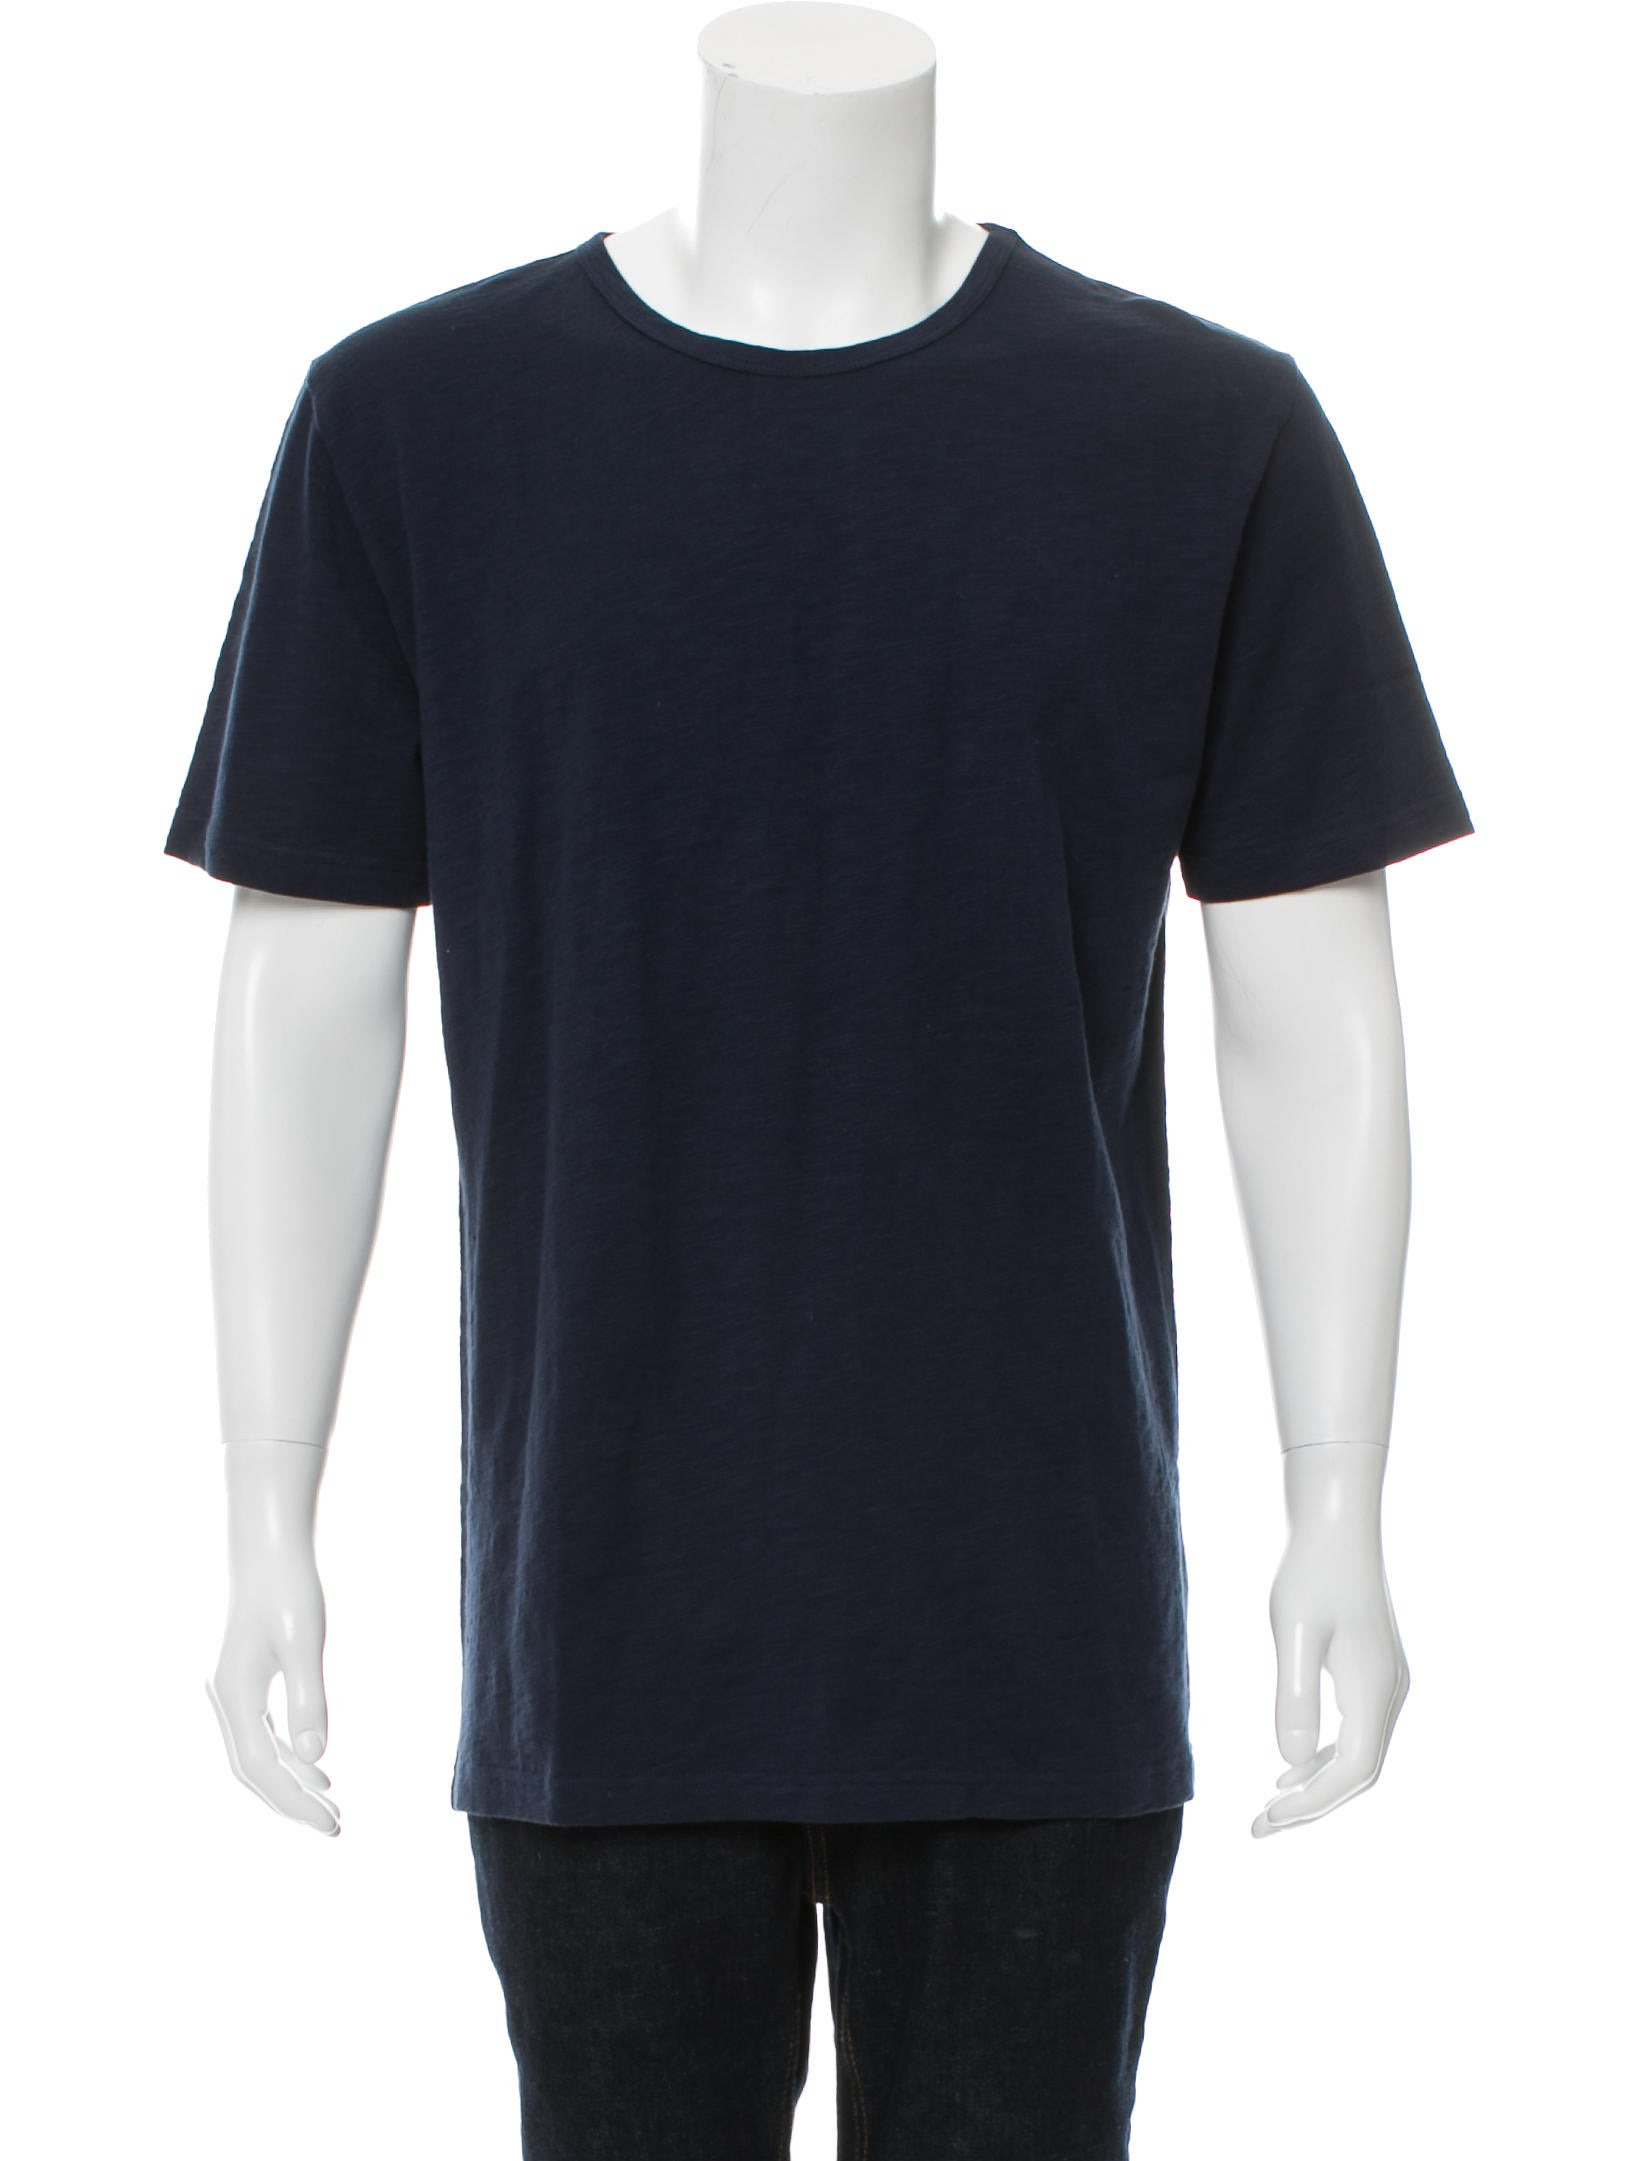 28610a92d43f3f Kith NYC Woven Crew Neck T-Shirt - Clothing - WKTIG20050 | The RealReal